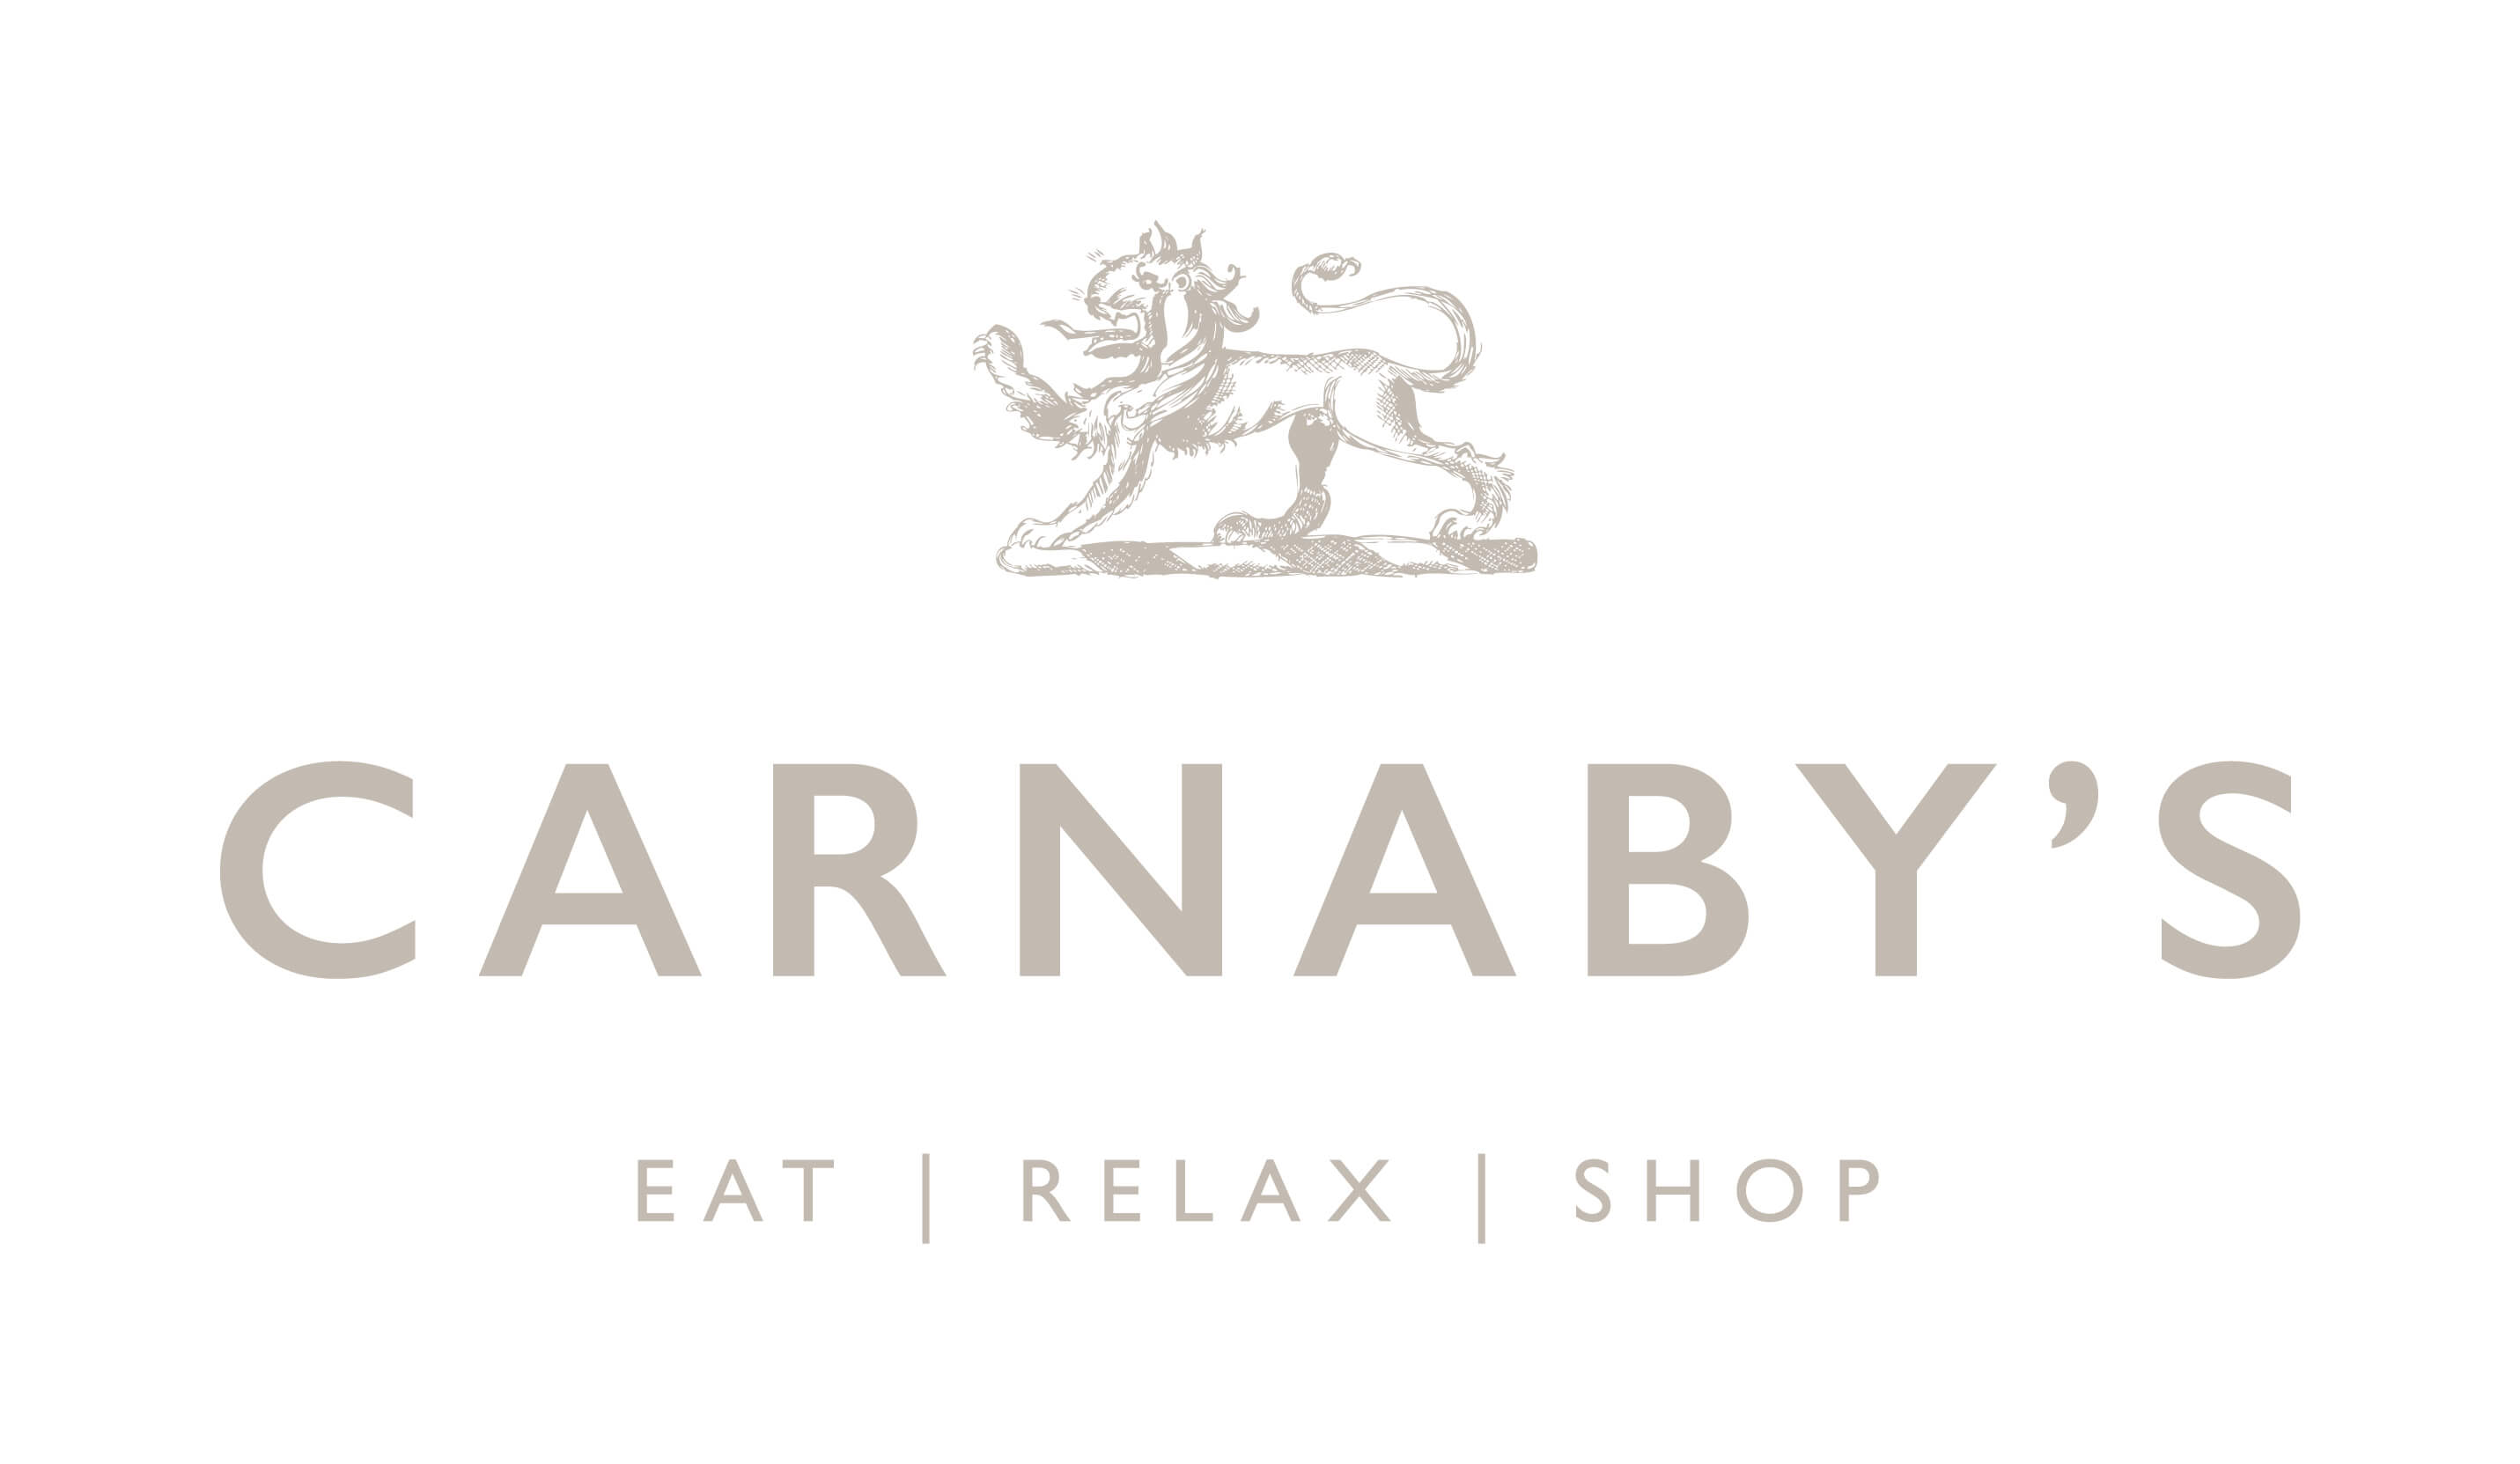 Carnaby's